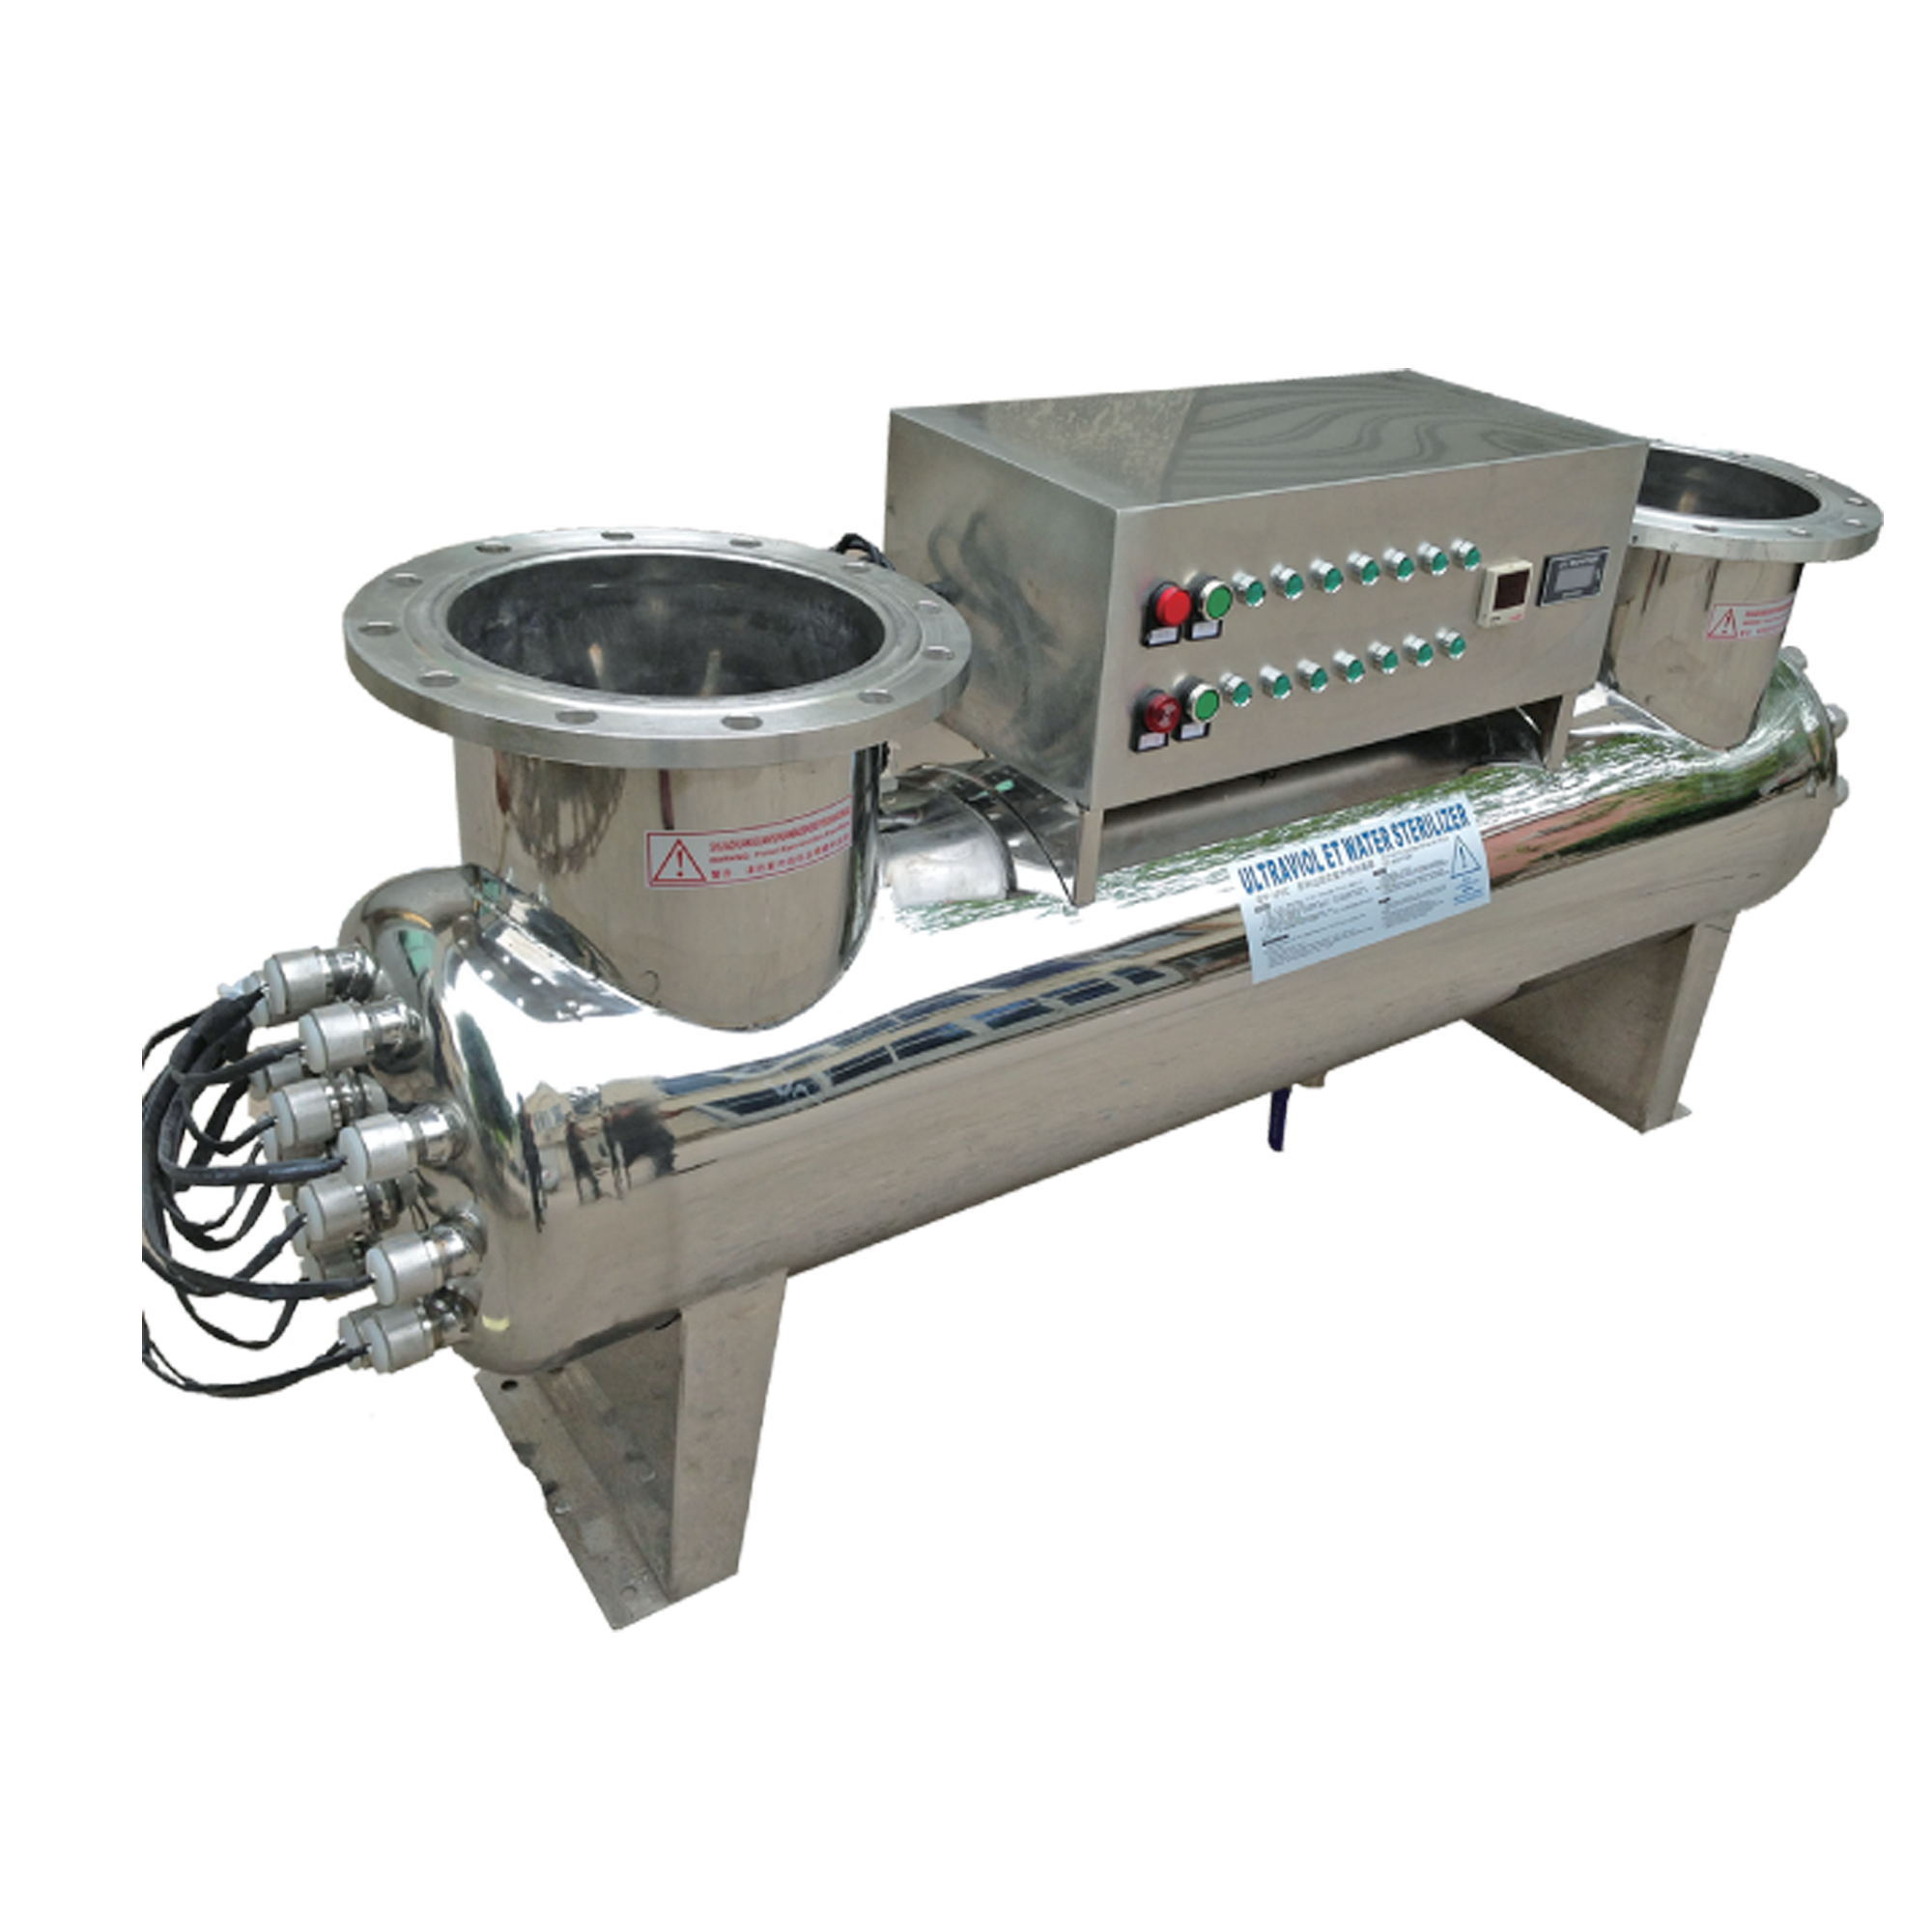 Side of UV Sterilizer